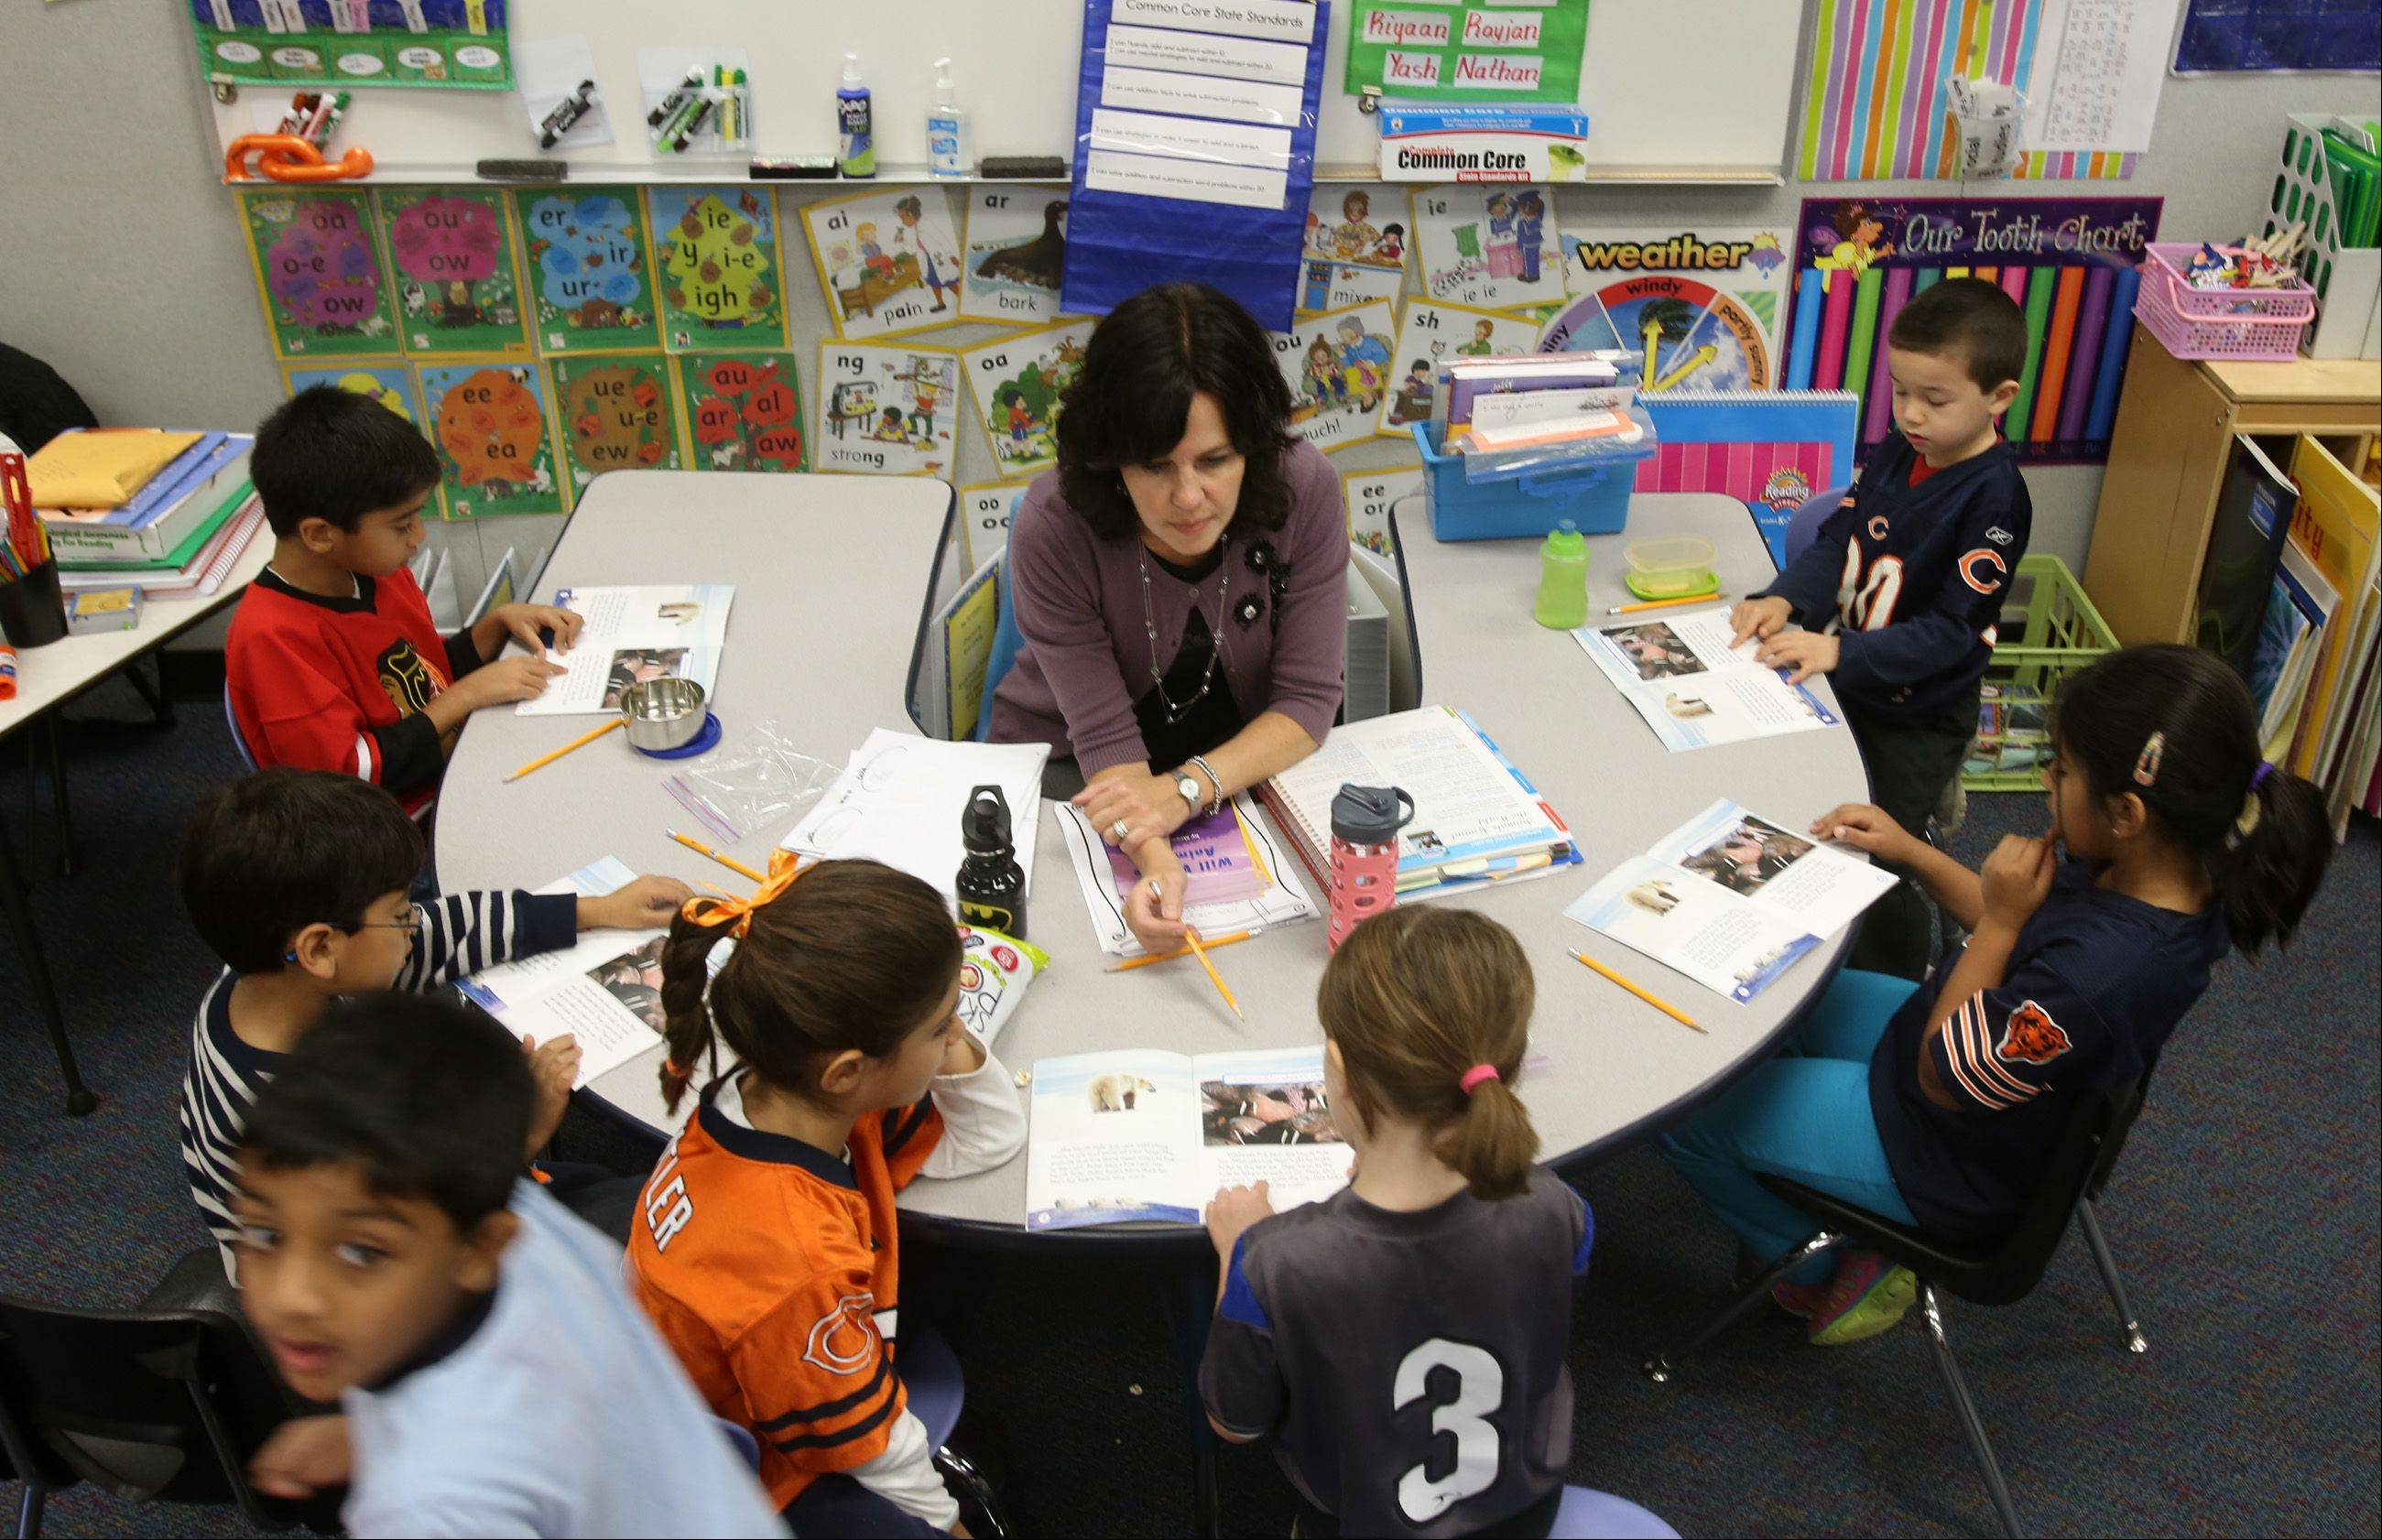 First-grade teacher Patti Meyer works with students at Brook Forest Elementary in Oak Brook, where 94.4 percent of students met or exceeded standards on the Illinois Standards Achievement Test taken this spring.